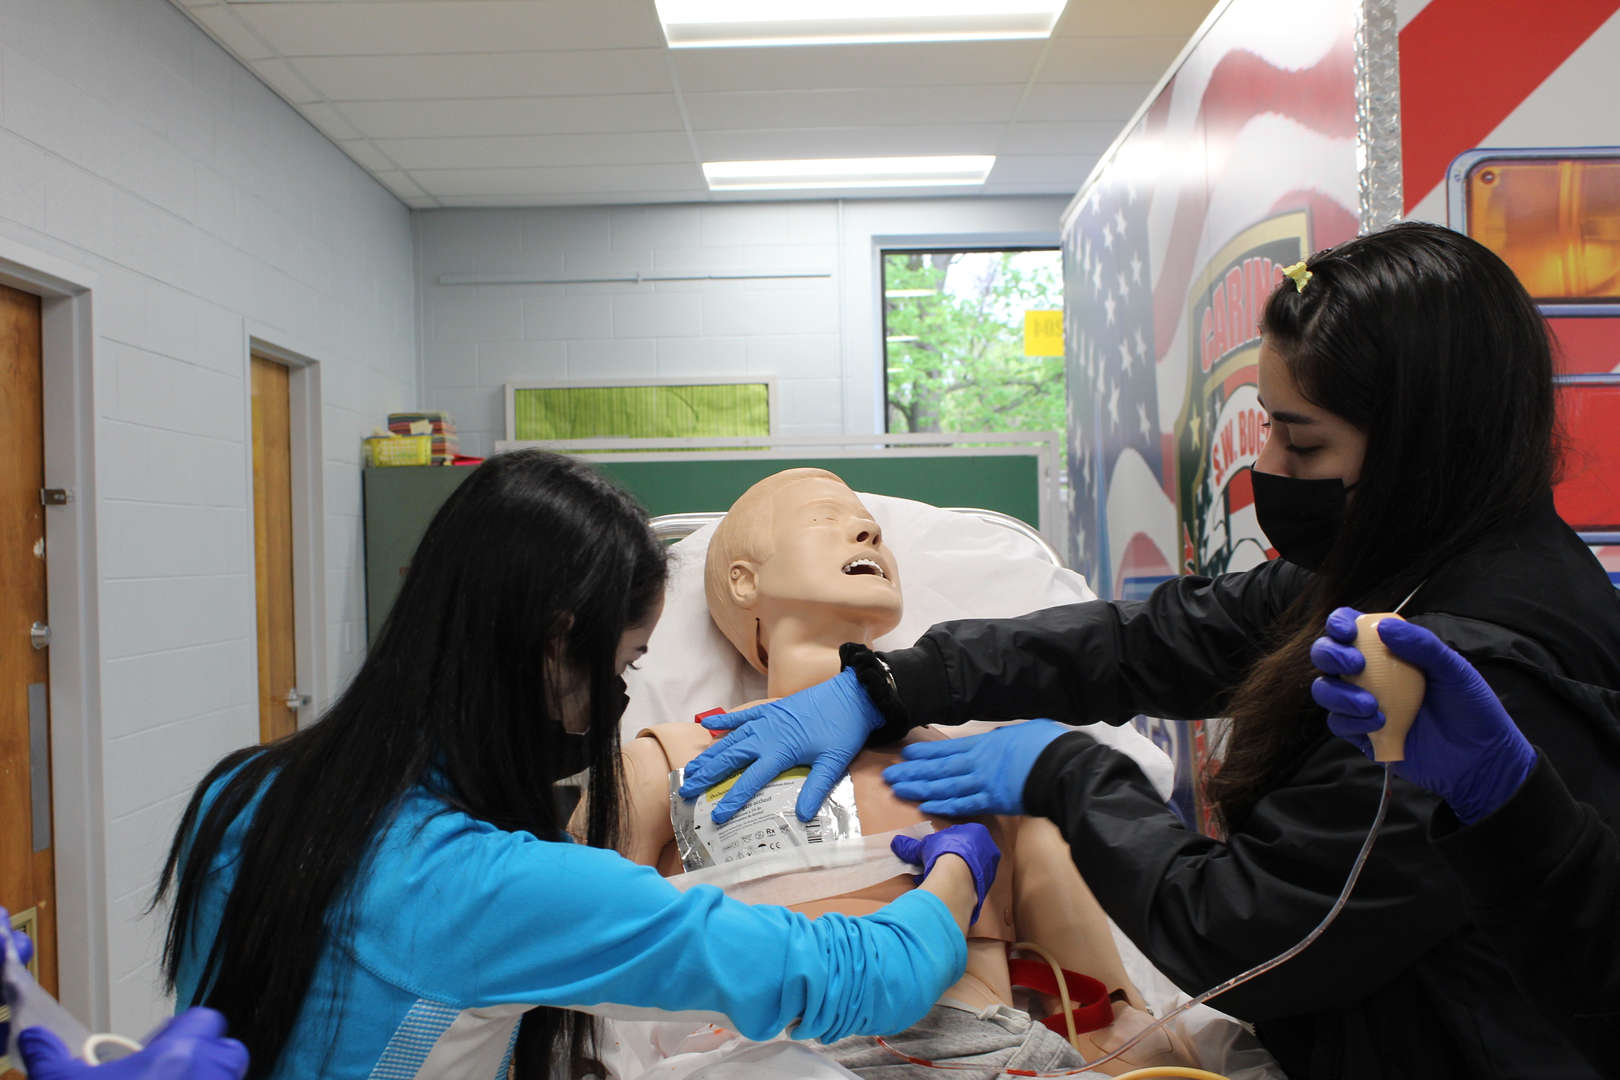 Students practice first aid on a mannequin